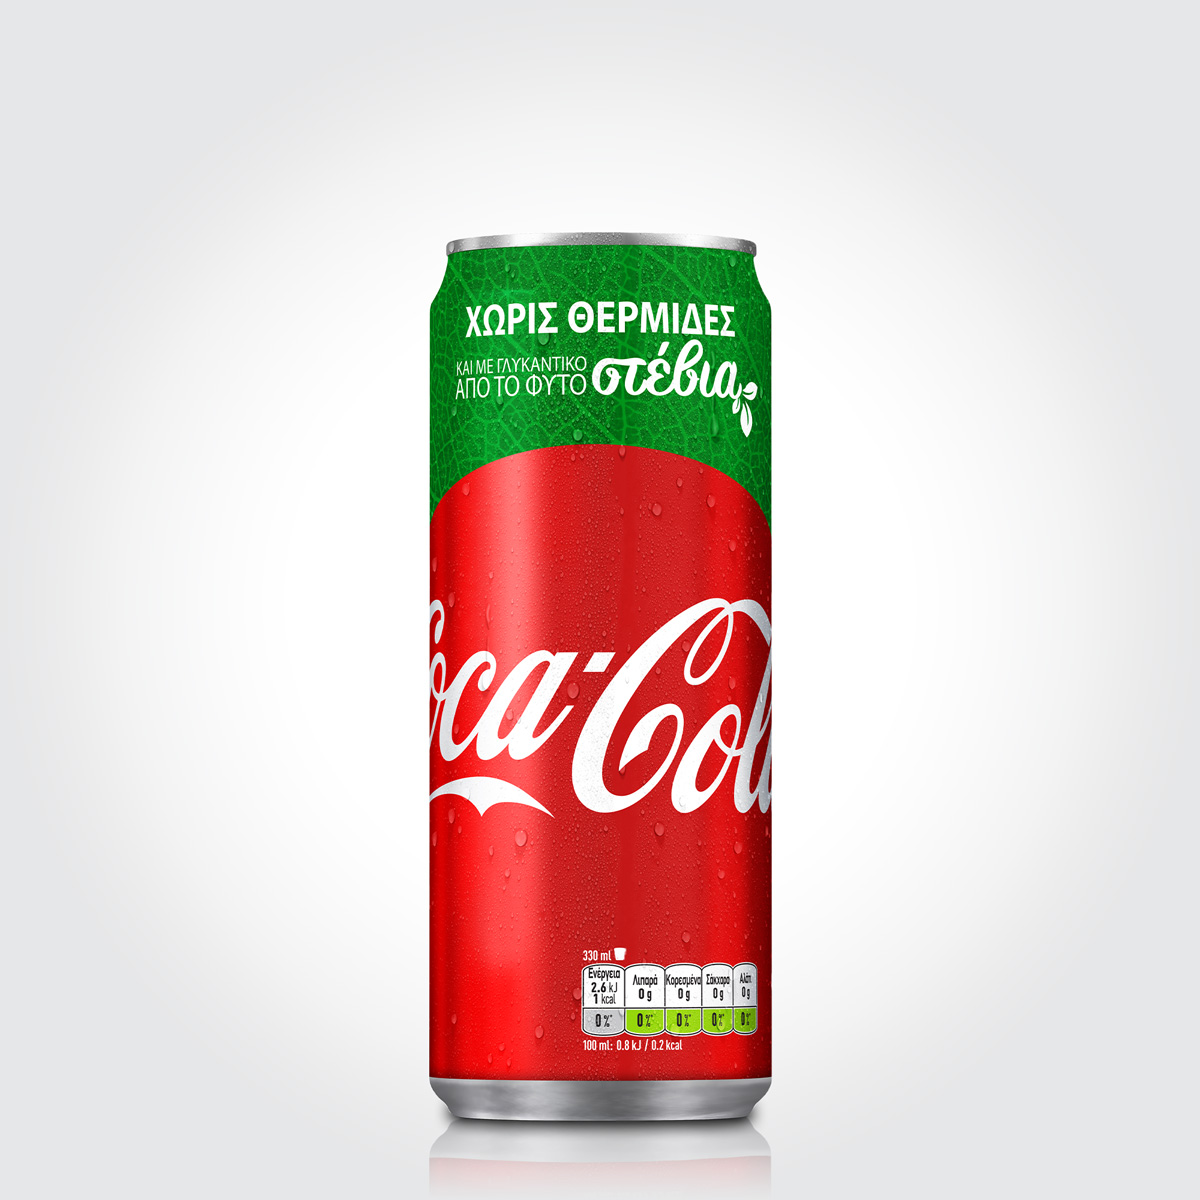 Coca-Cola Stevia redesign 330ml aluminum can